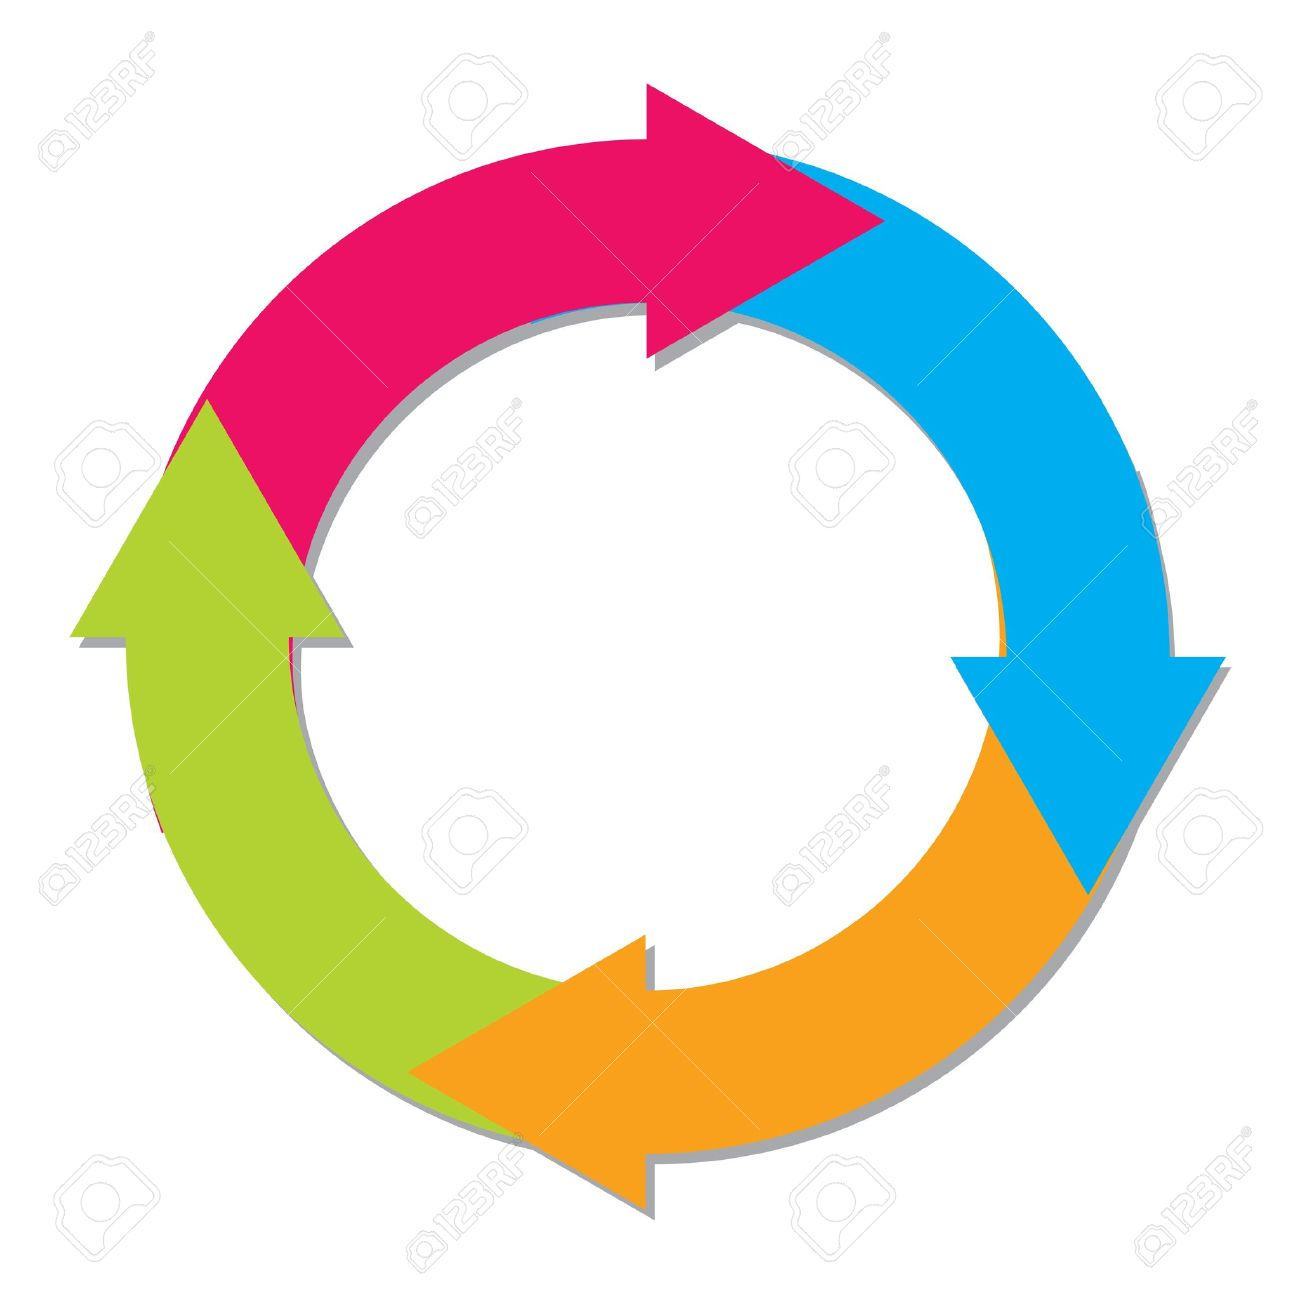 Circle workflow chart stock photo picture and royalty free image circle workflow chart stock photo 13525643 nvjuhfo Choice Image